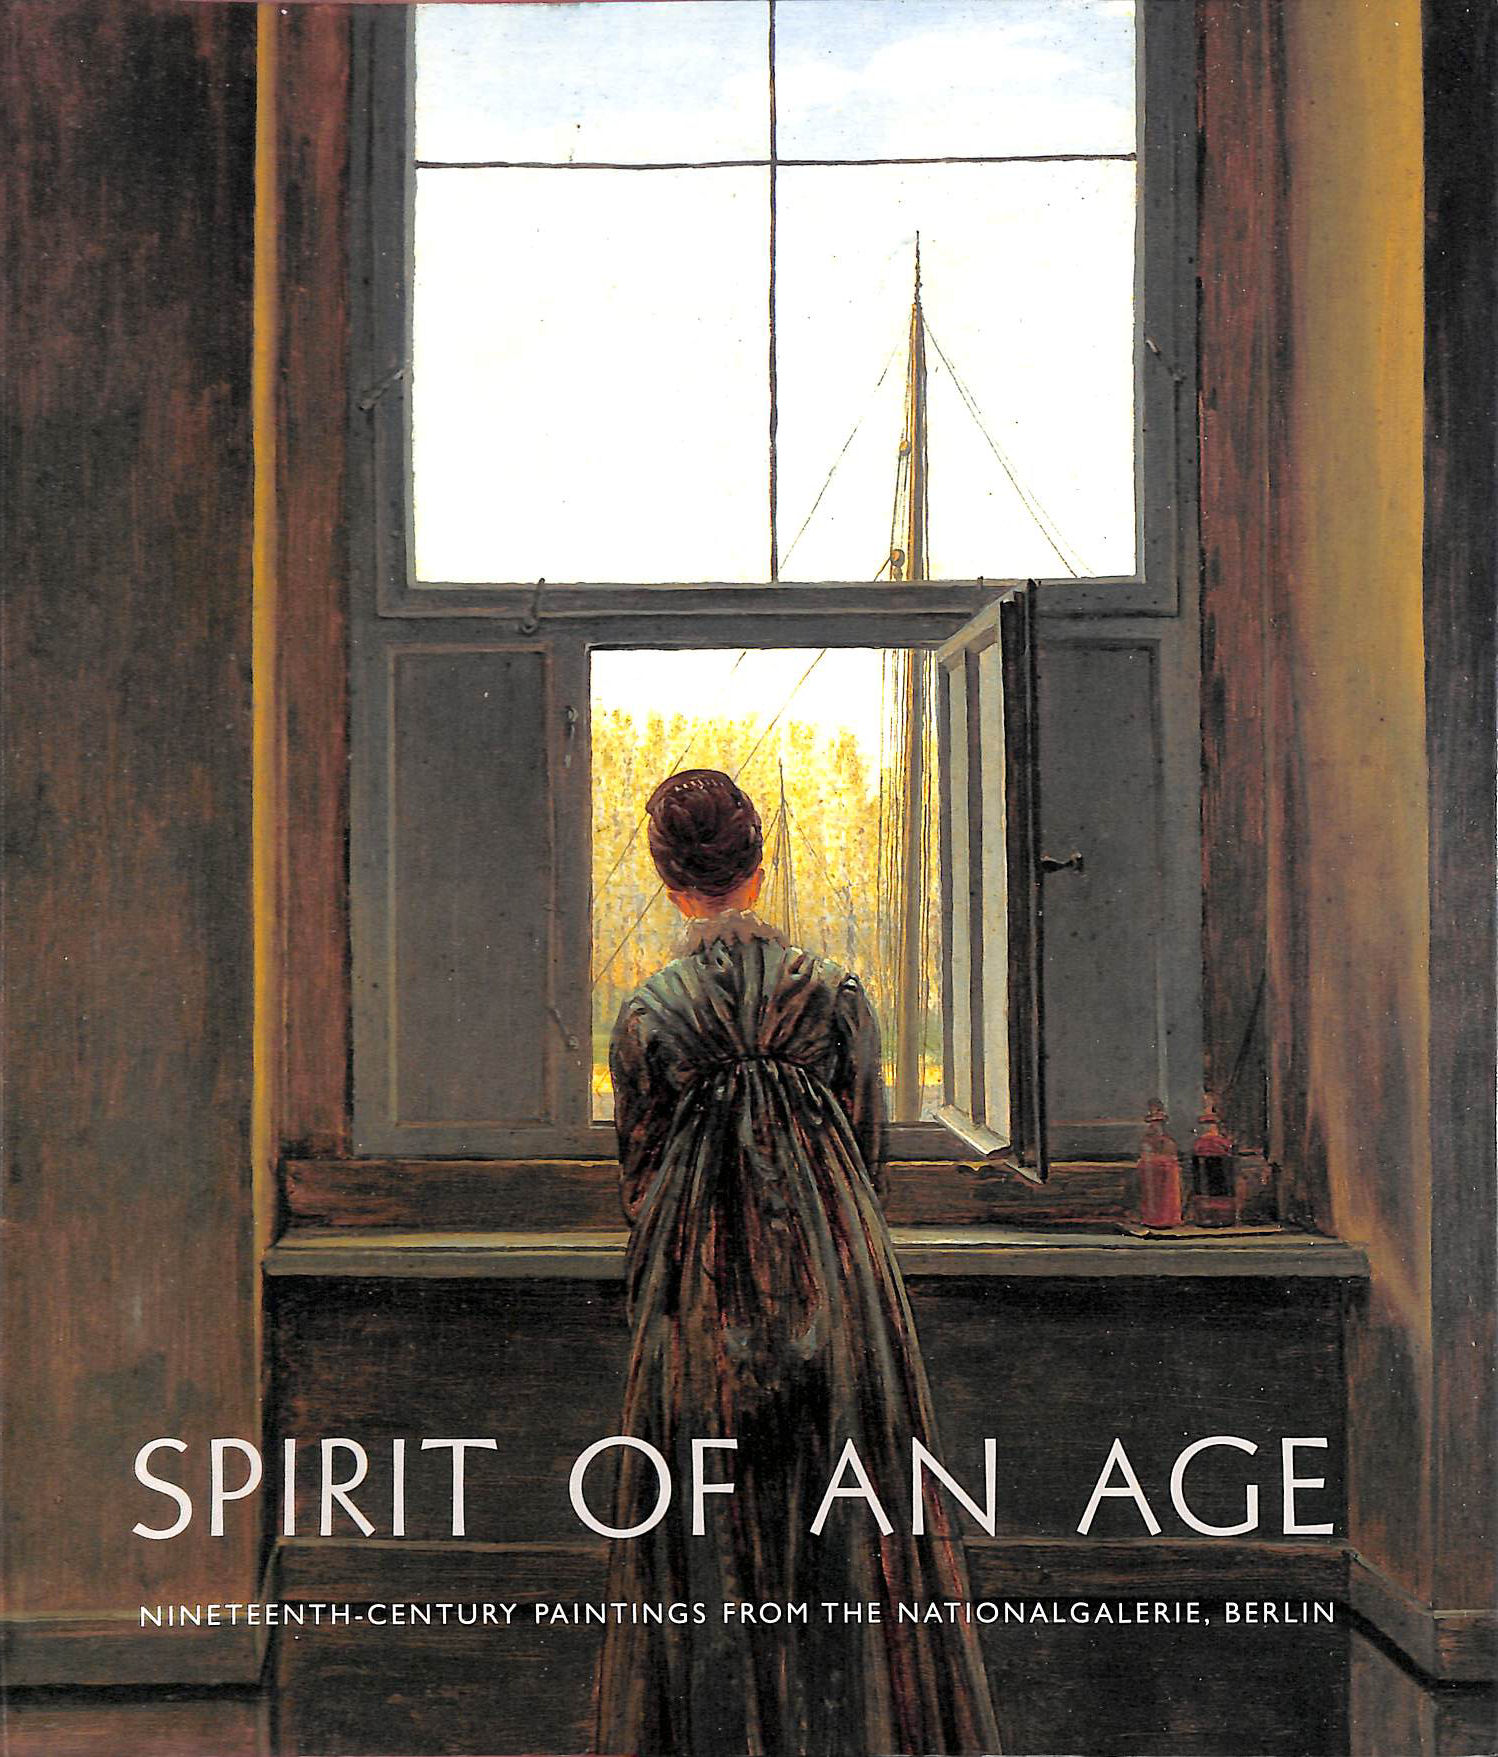 Image for Spirit of an Age. Nineteenth Century Paintings from the Nationalgalerie, Berlin